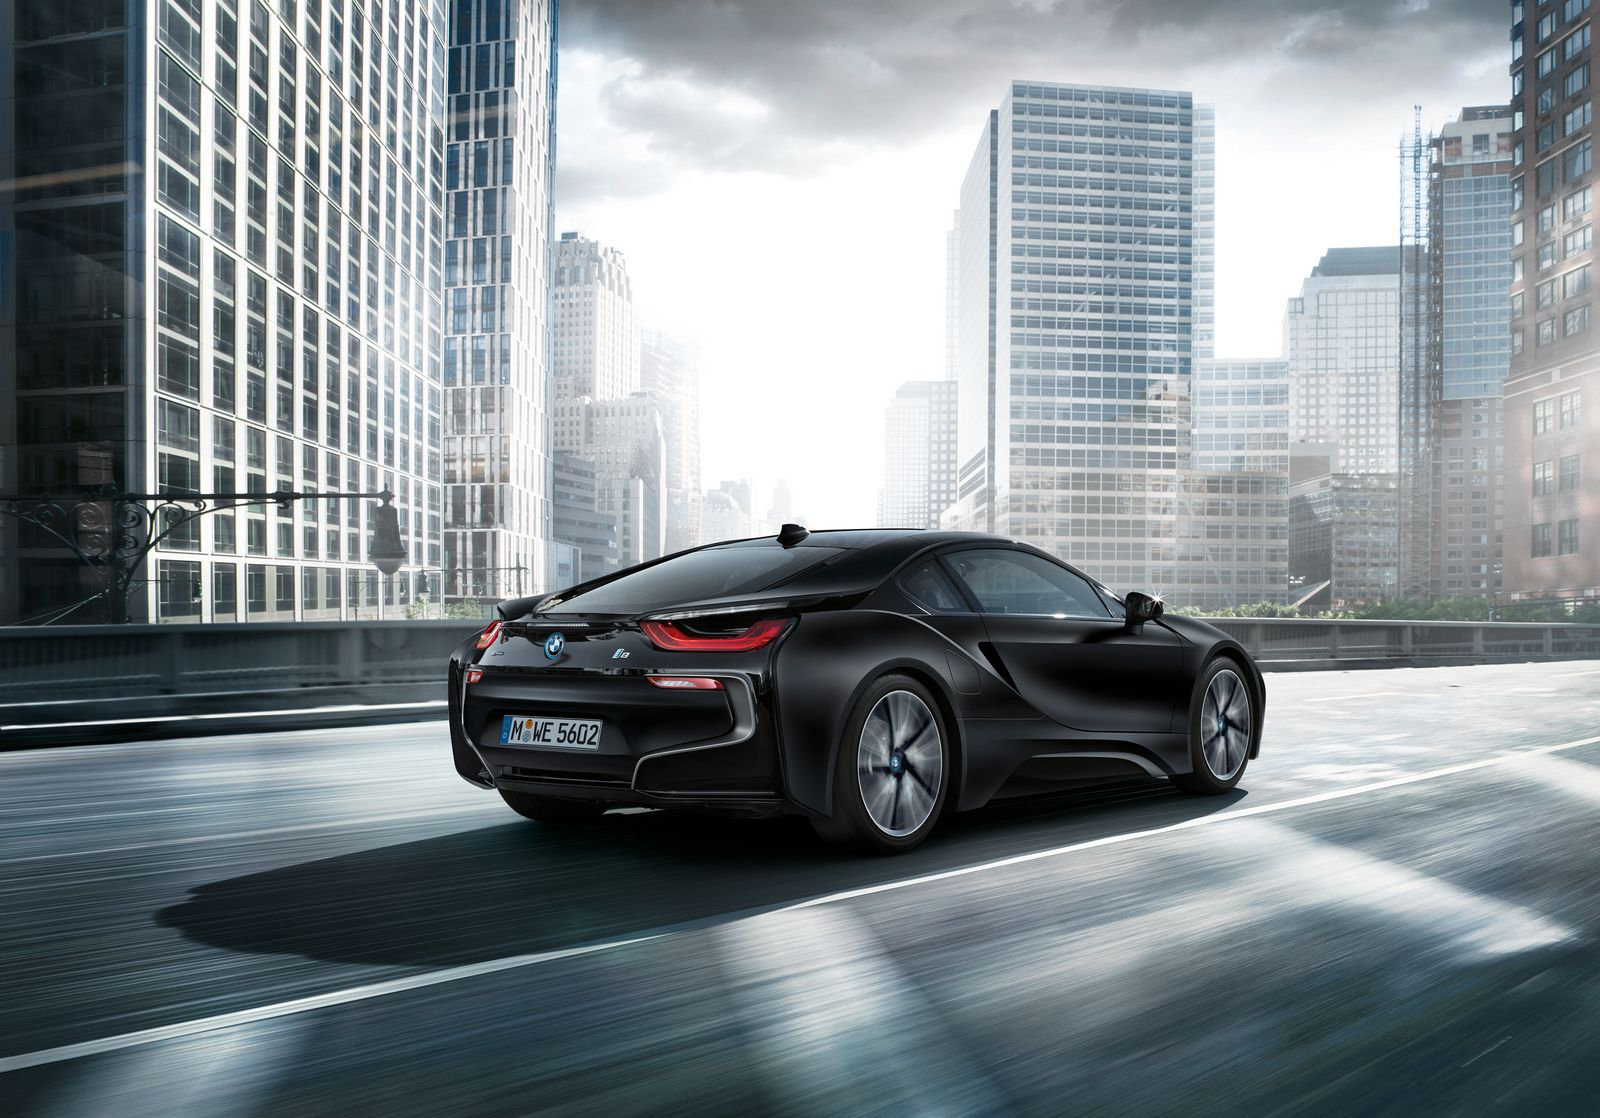 BMW i8 Frozen Black 5